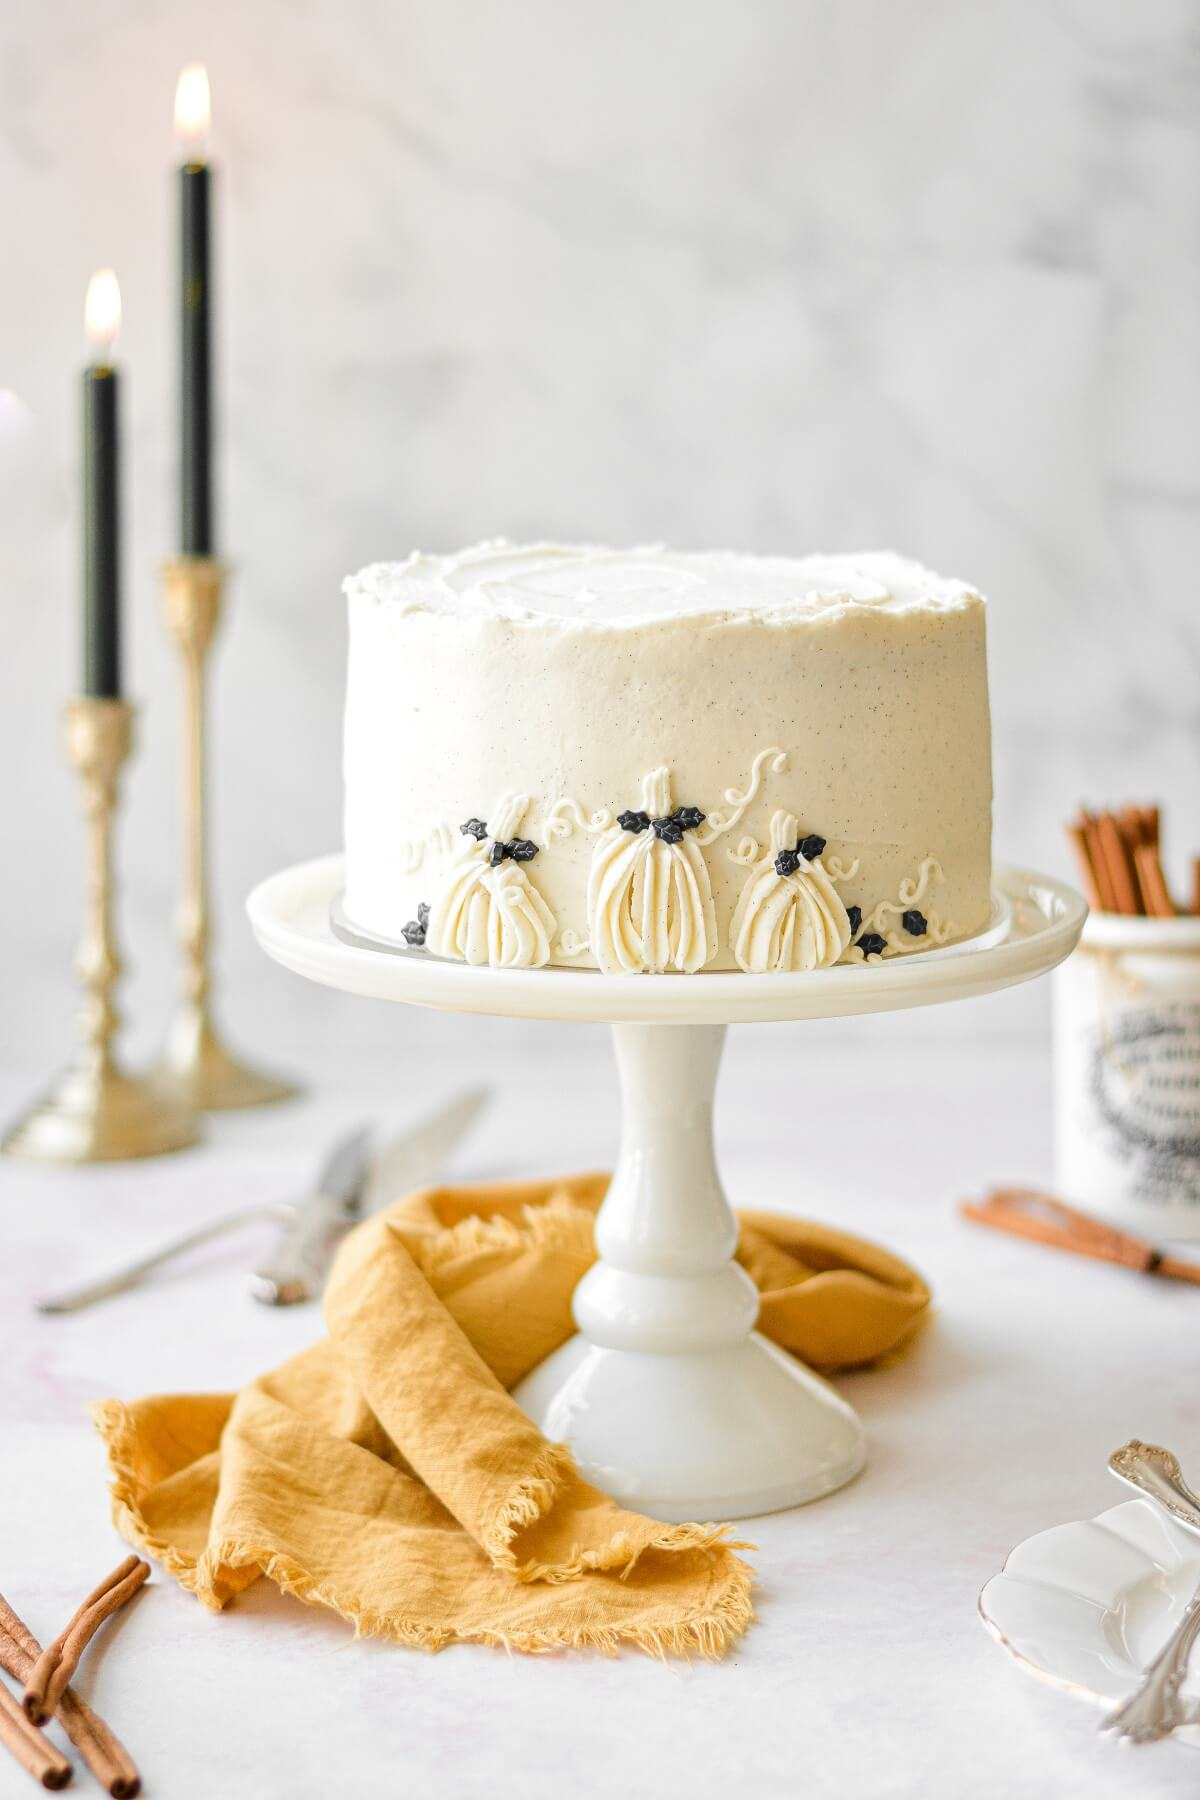 Brown butter pumpkin cake, with vanilla bean buttercream and decorated with buttercream pumpkins, sitting on a white cake stand next to a yellow linen napkin.